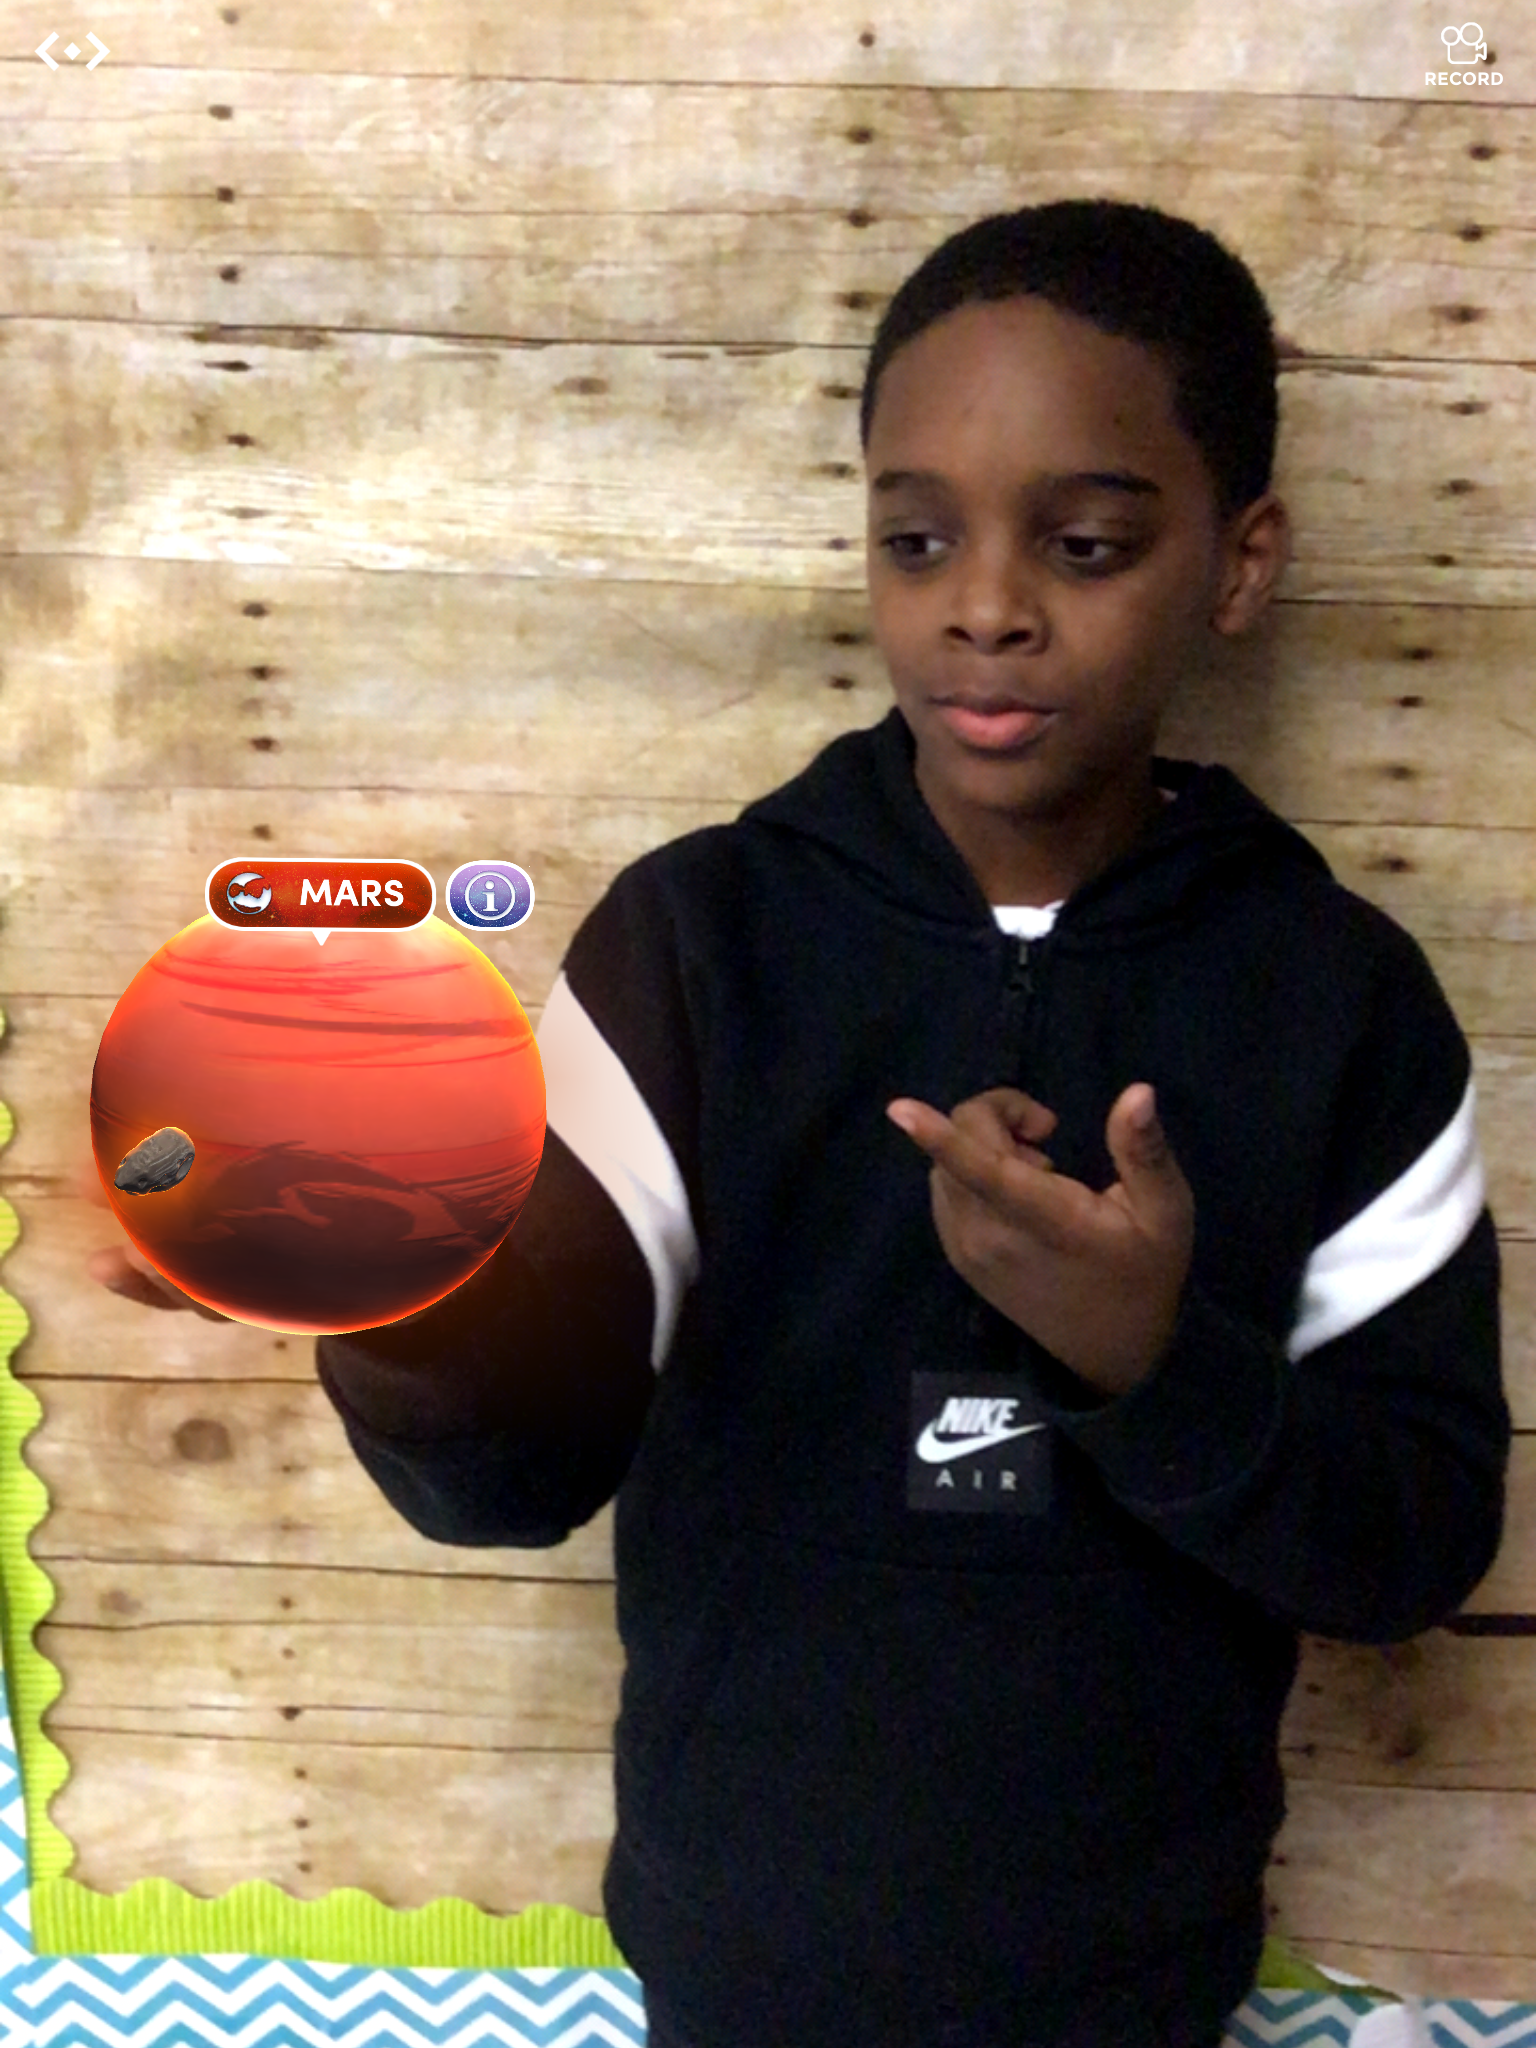 Devin Threets held Mars in the palm of his hand during a recent science lesson in Ms. Bridgeman's 5th grade science class at Clark Middle School.